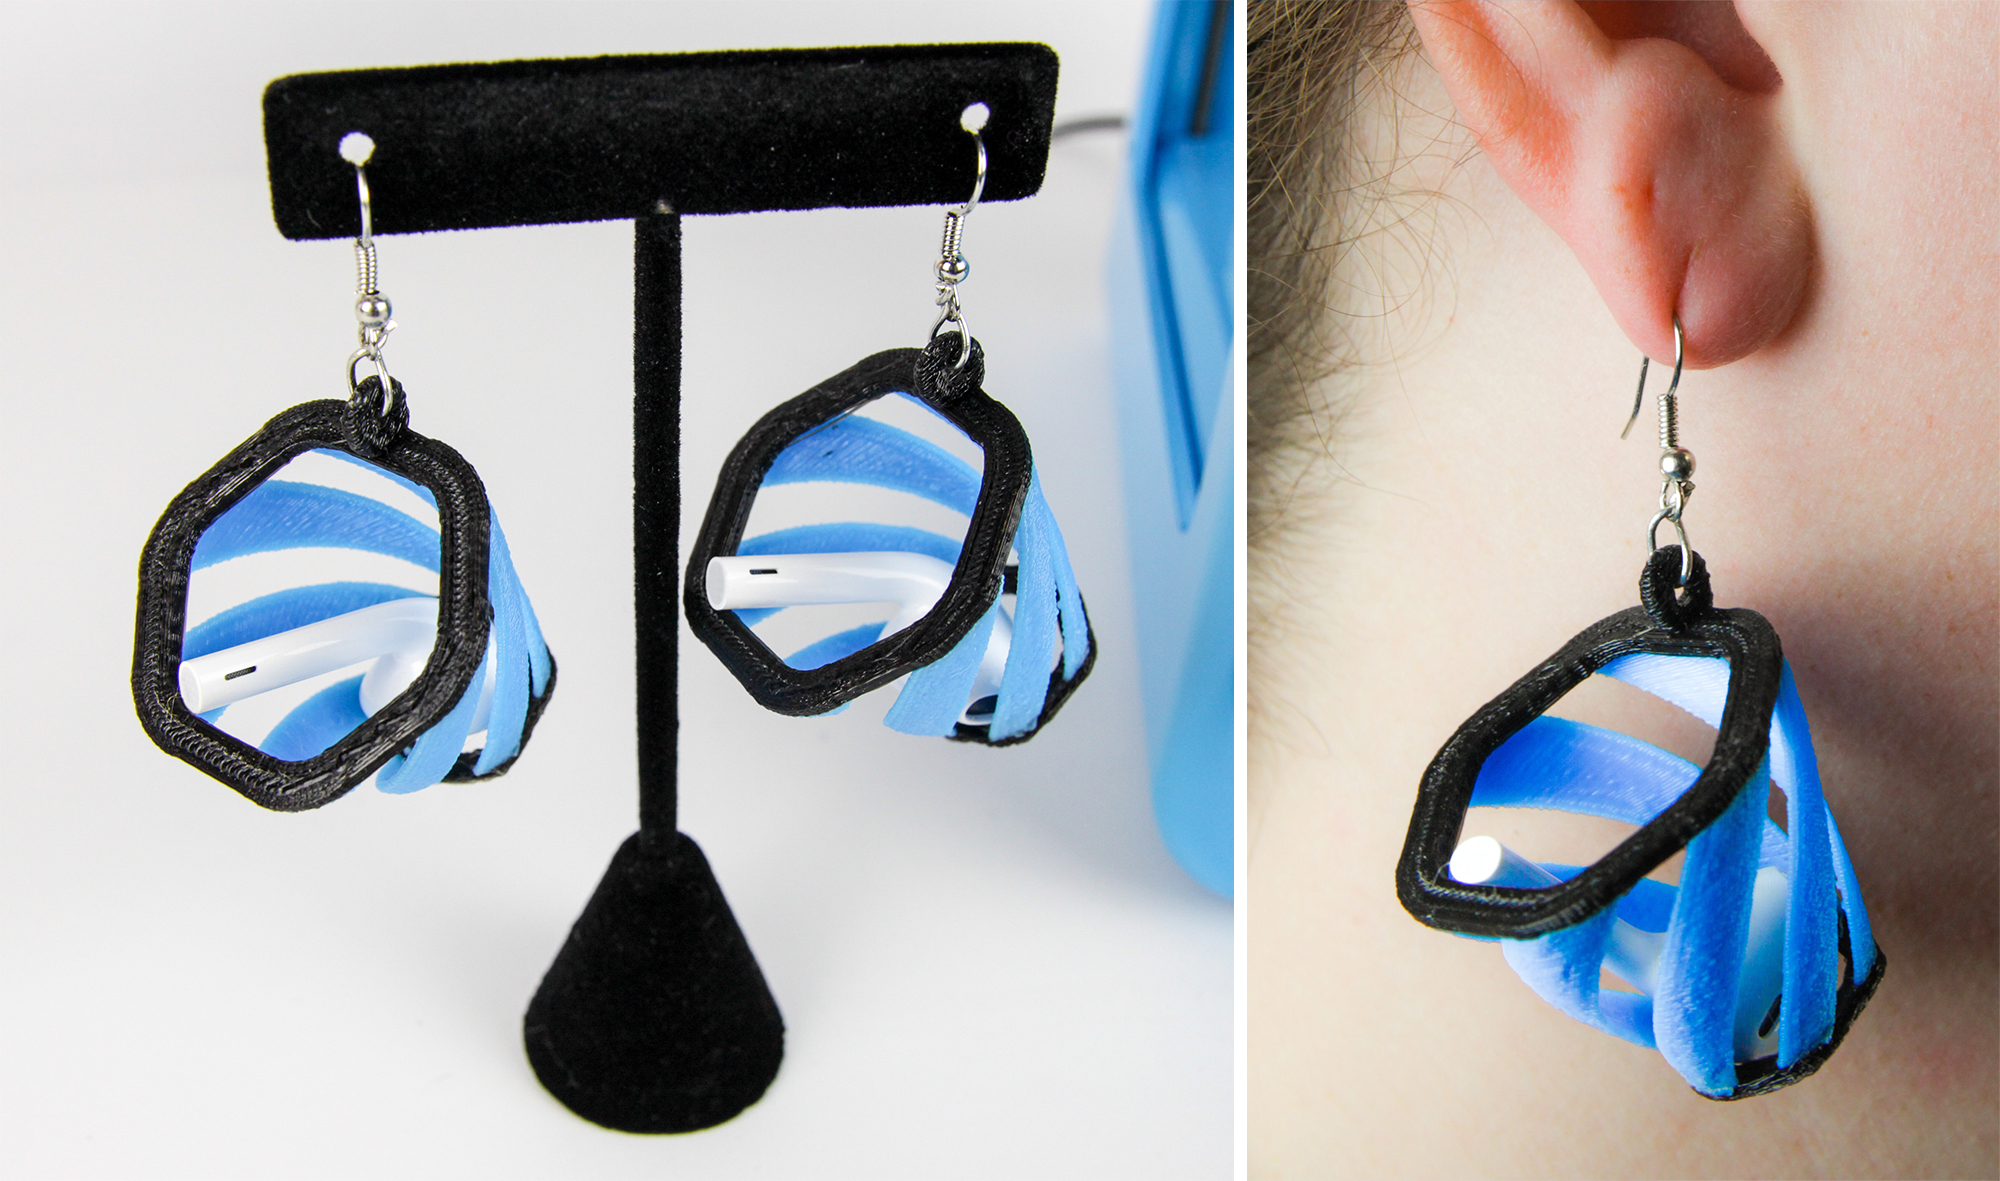 3d Printed Earring Basket Things Will Stow Or Catch Your New Apple